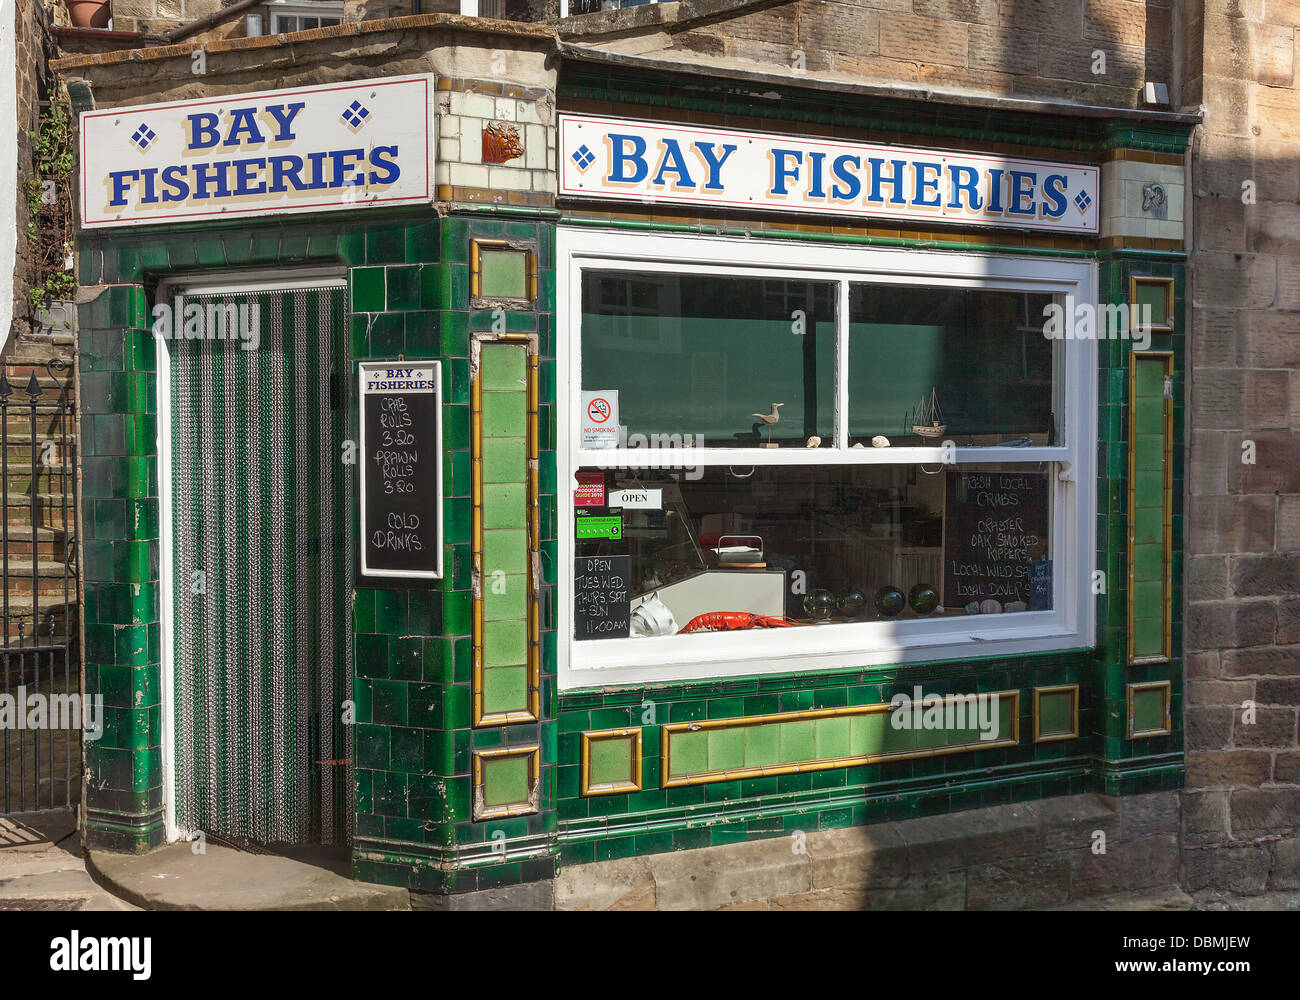 Robin Hood's Bay Yorkshire Bay Fisheries Shop - Stock Image